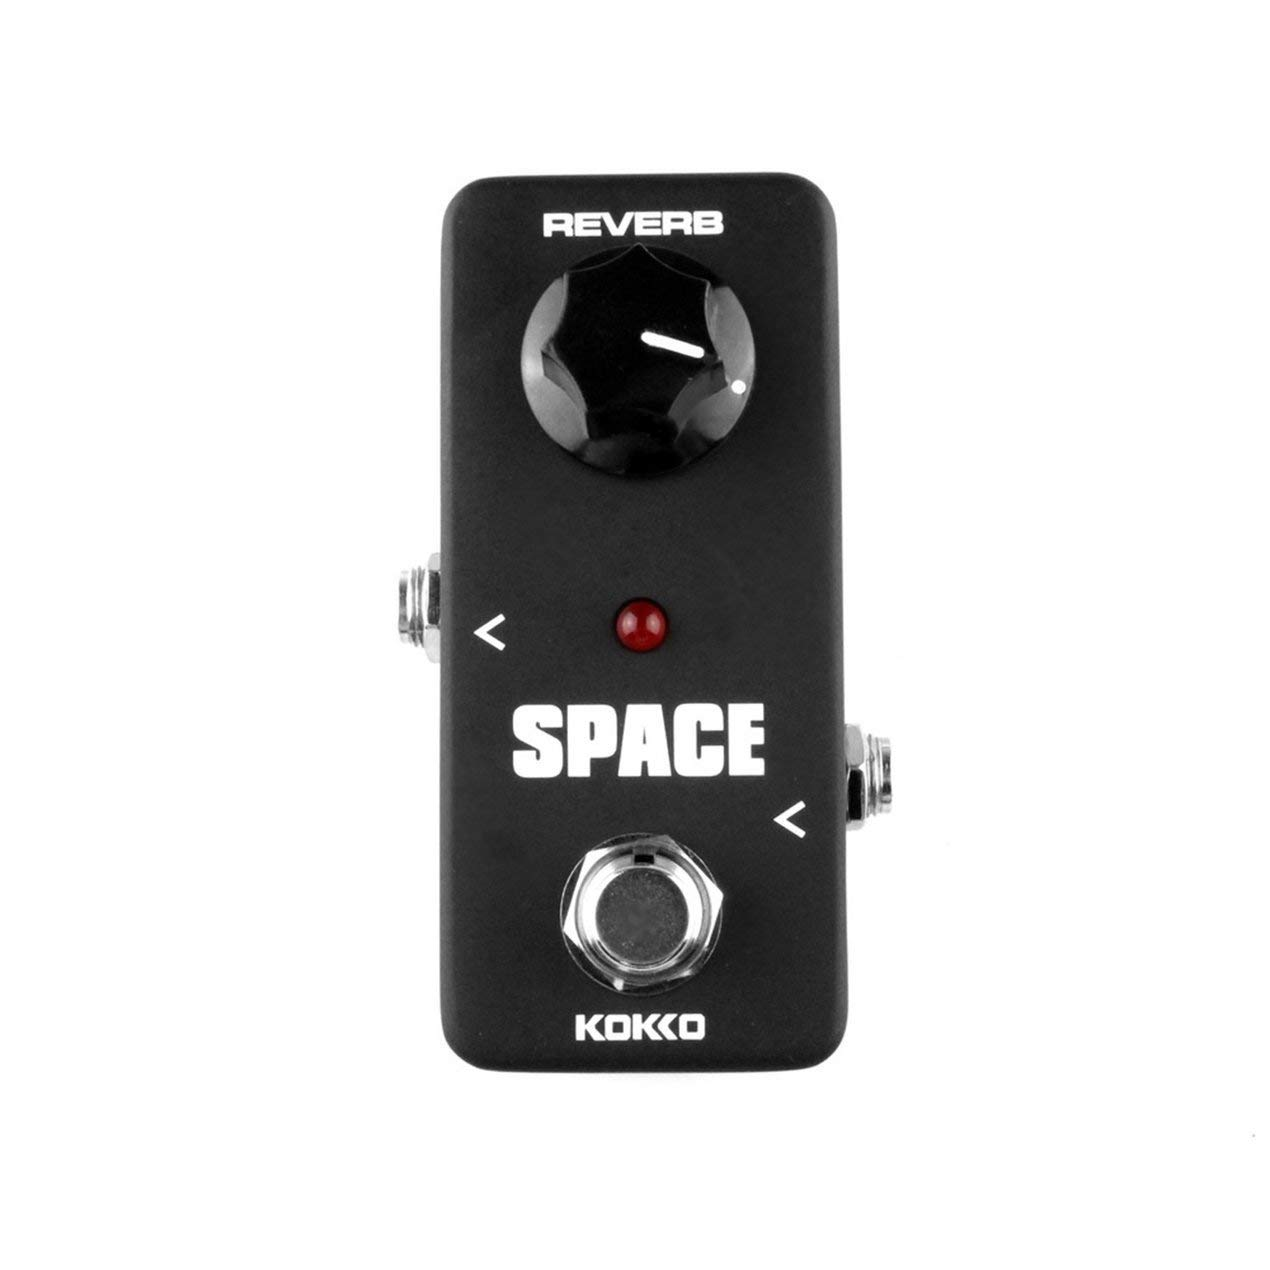 Reverb Guitar Effects Pedal Space Full Reverb Effect Sound Processor Stompbox Guitar Parts & Accessories